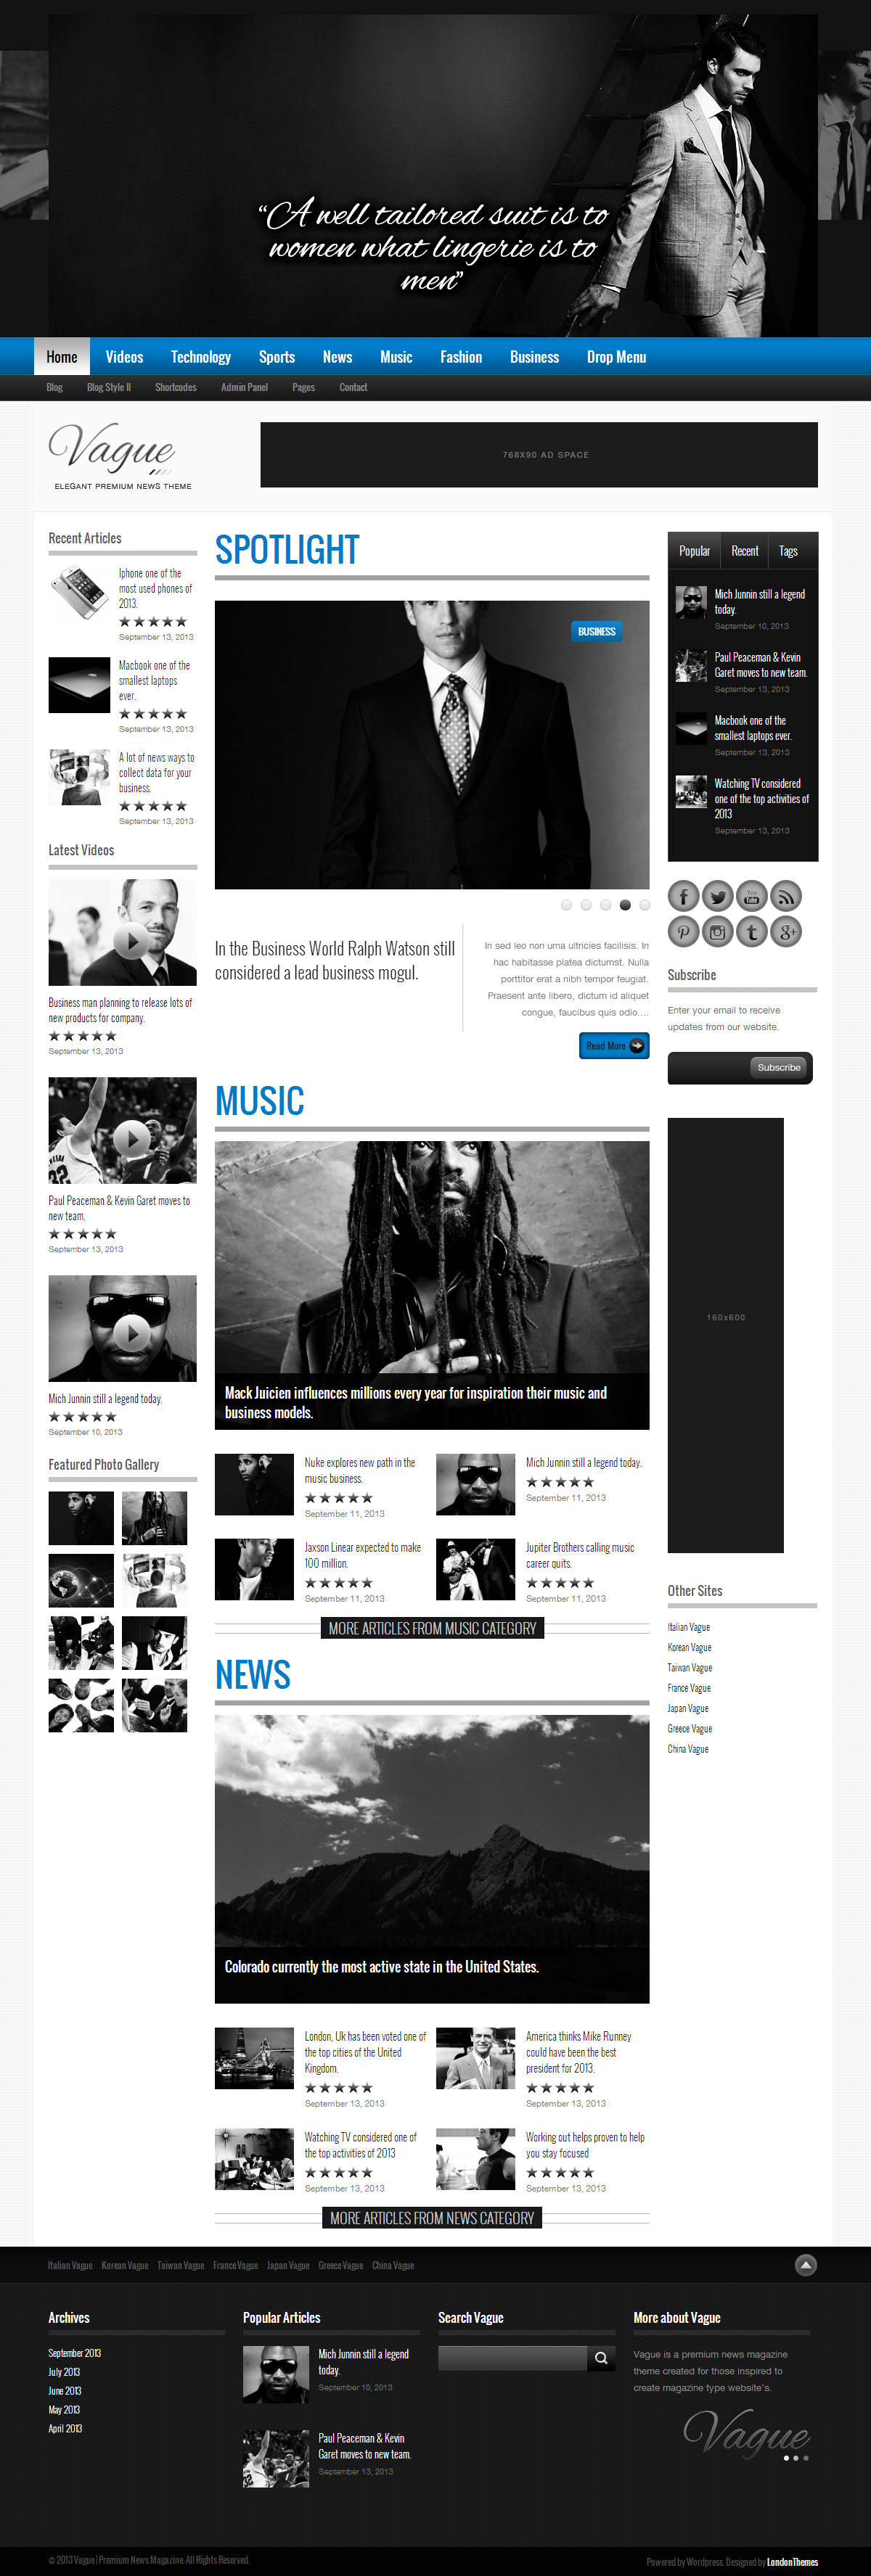 Vague - Premium Responsive News Magazine Theme